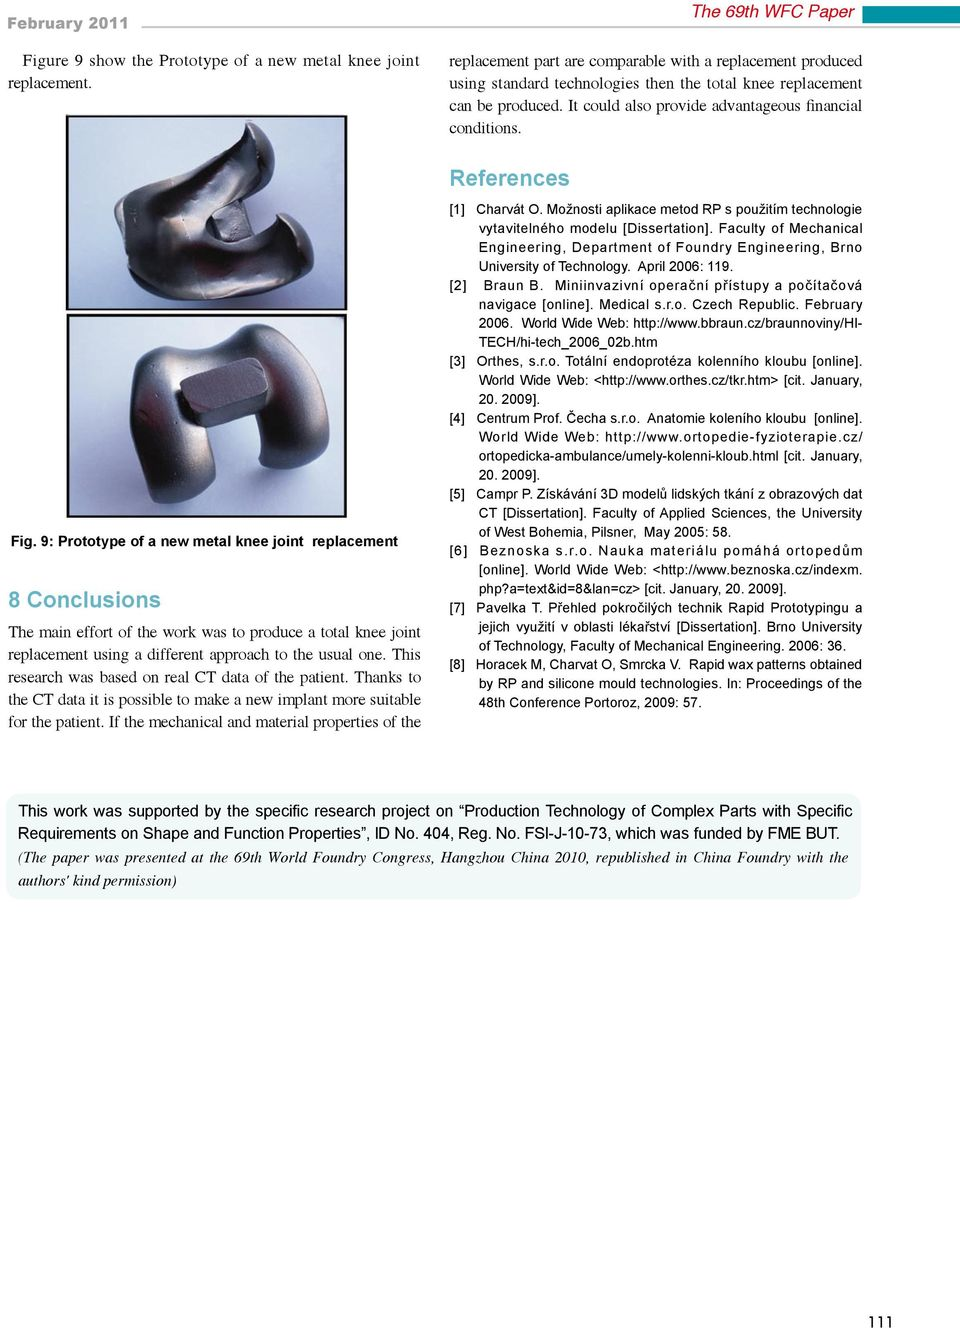 References Fig. 9: Prototype of a new metal knee joint replacement 8 Conclusions The main effort of the work was to produce a total knee joint replacement using a different approach to the usual one.